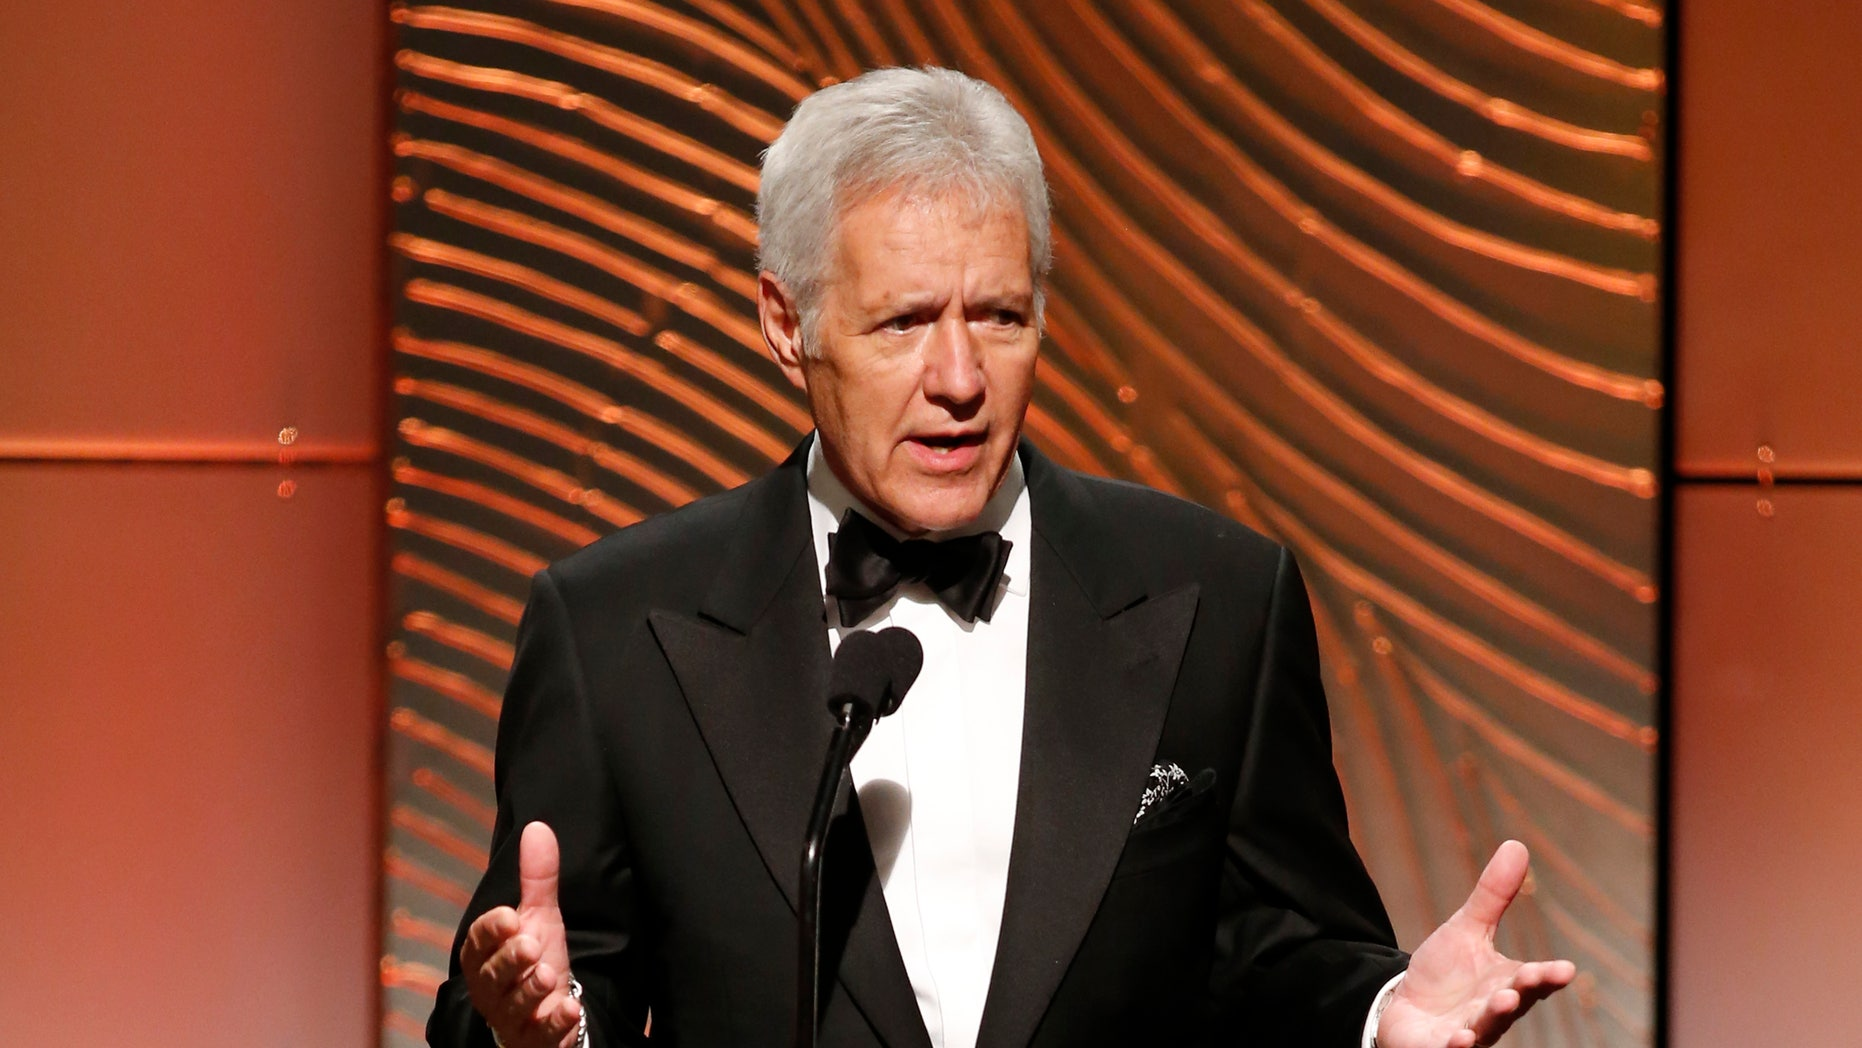 June 16, 2013. Alex Trebek speaks on stage during the 40th annual Daytime Emmy Awards in Beverly Hills, California.